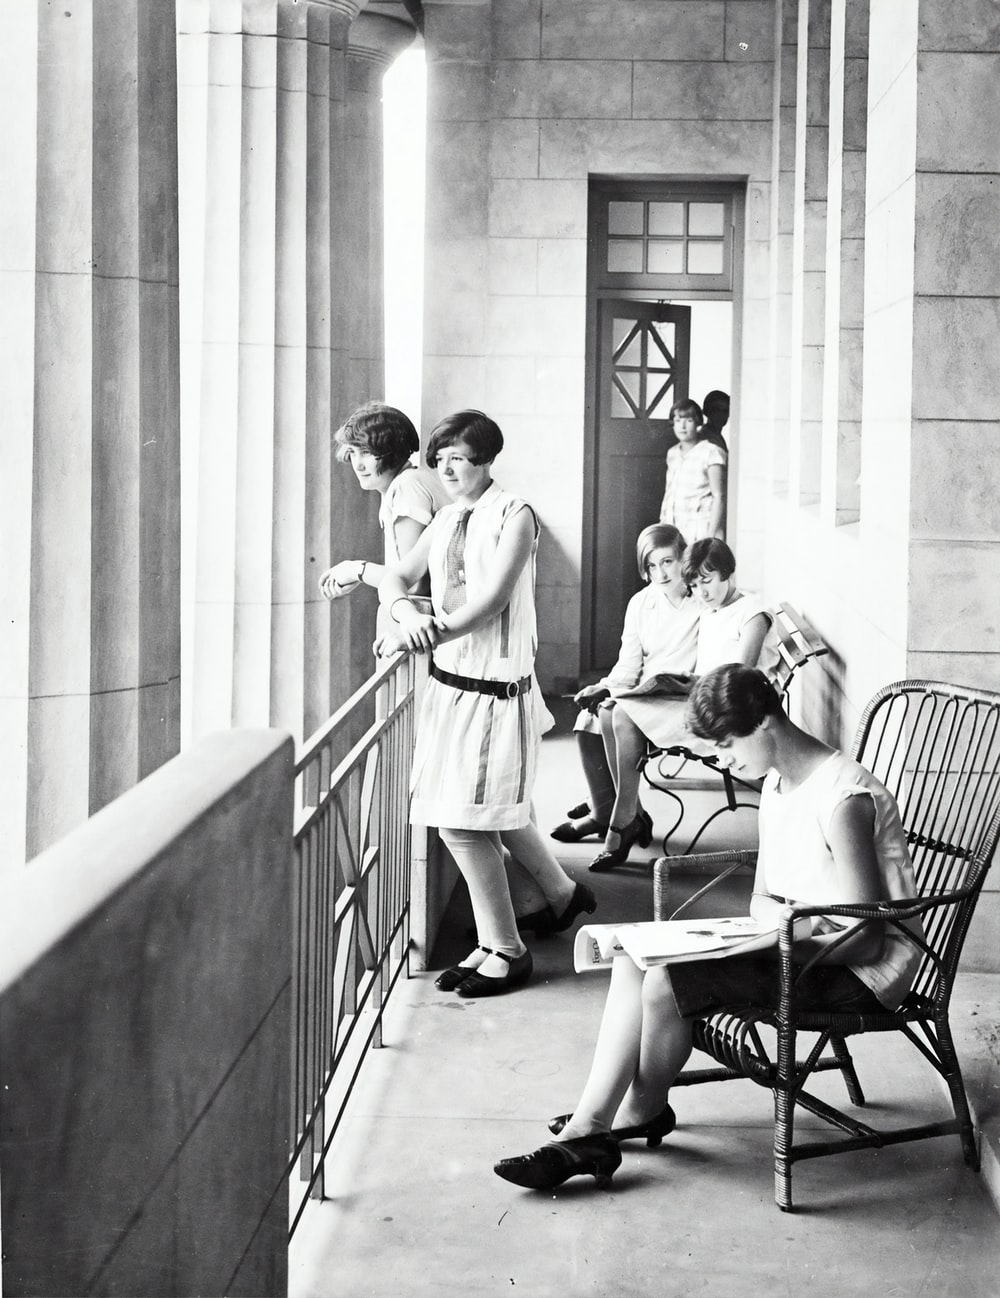 group of woman sitting and standing beside railing